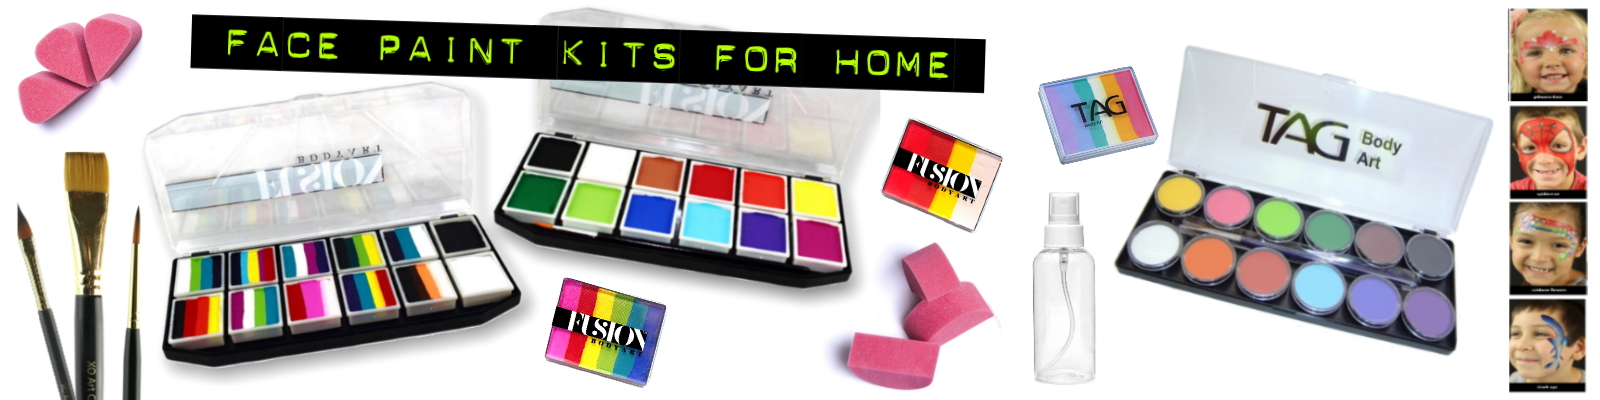 home party face paint kits banner